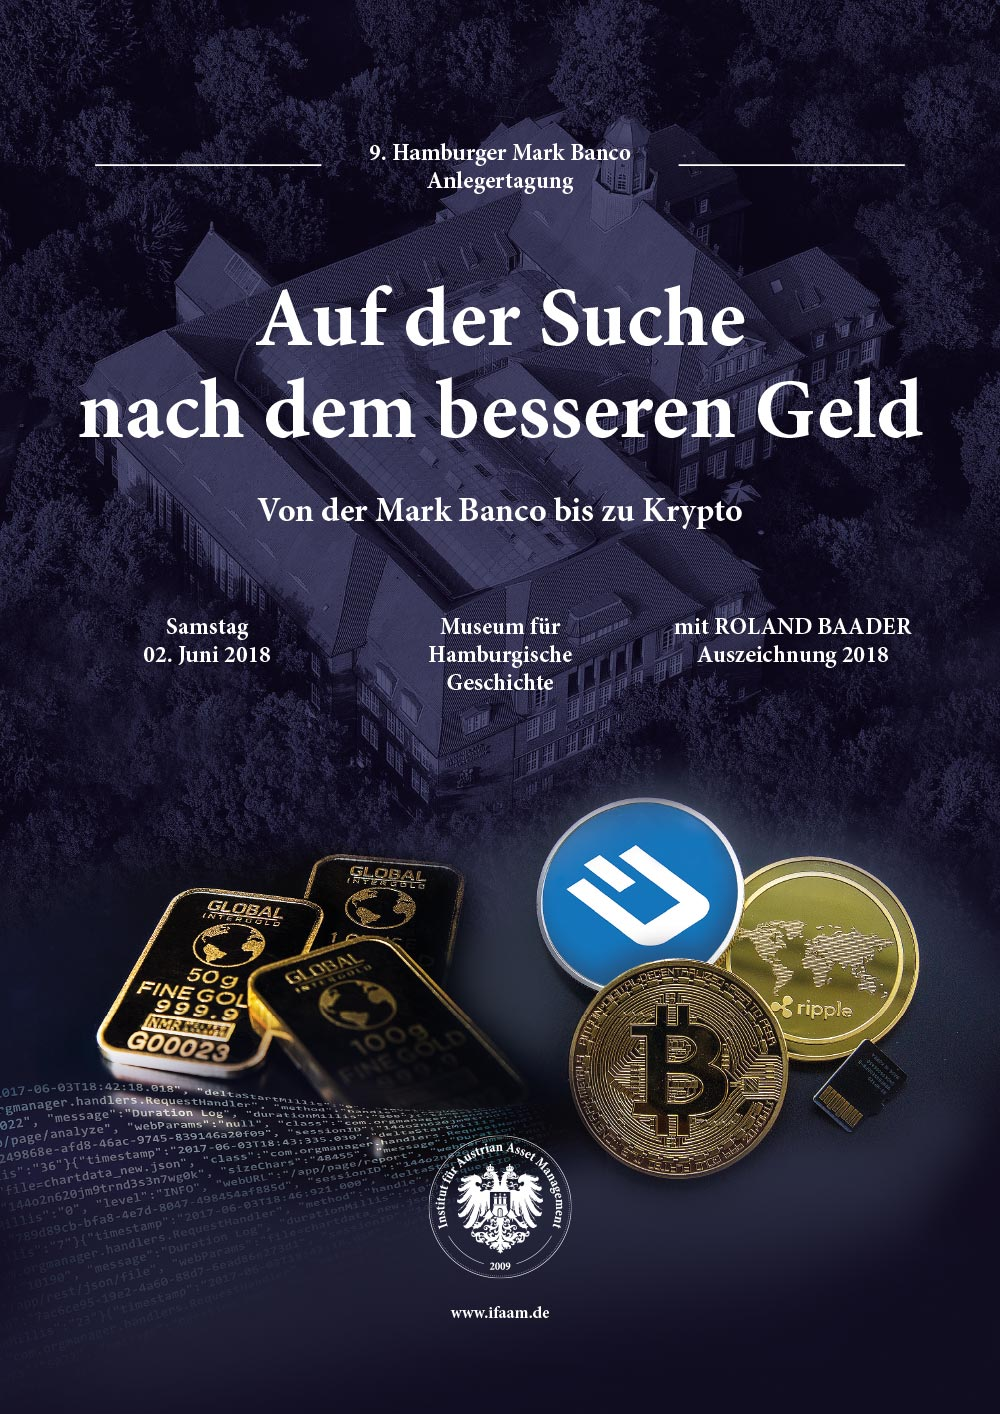 Mark Banco Anlegertagung 2018